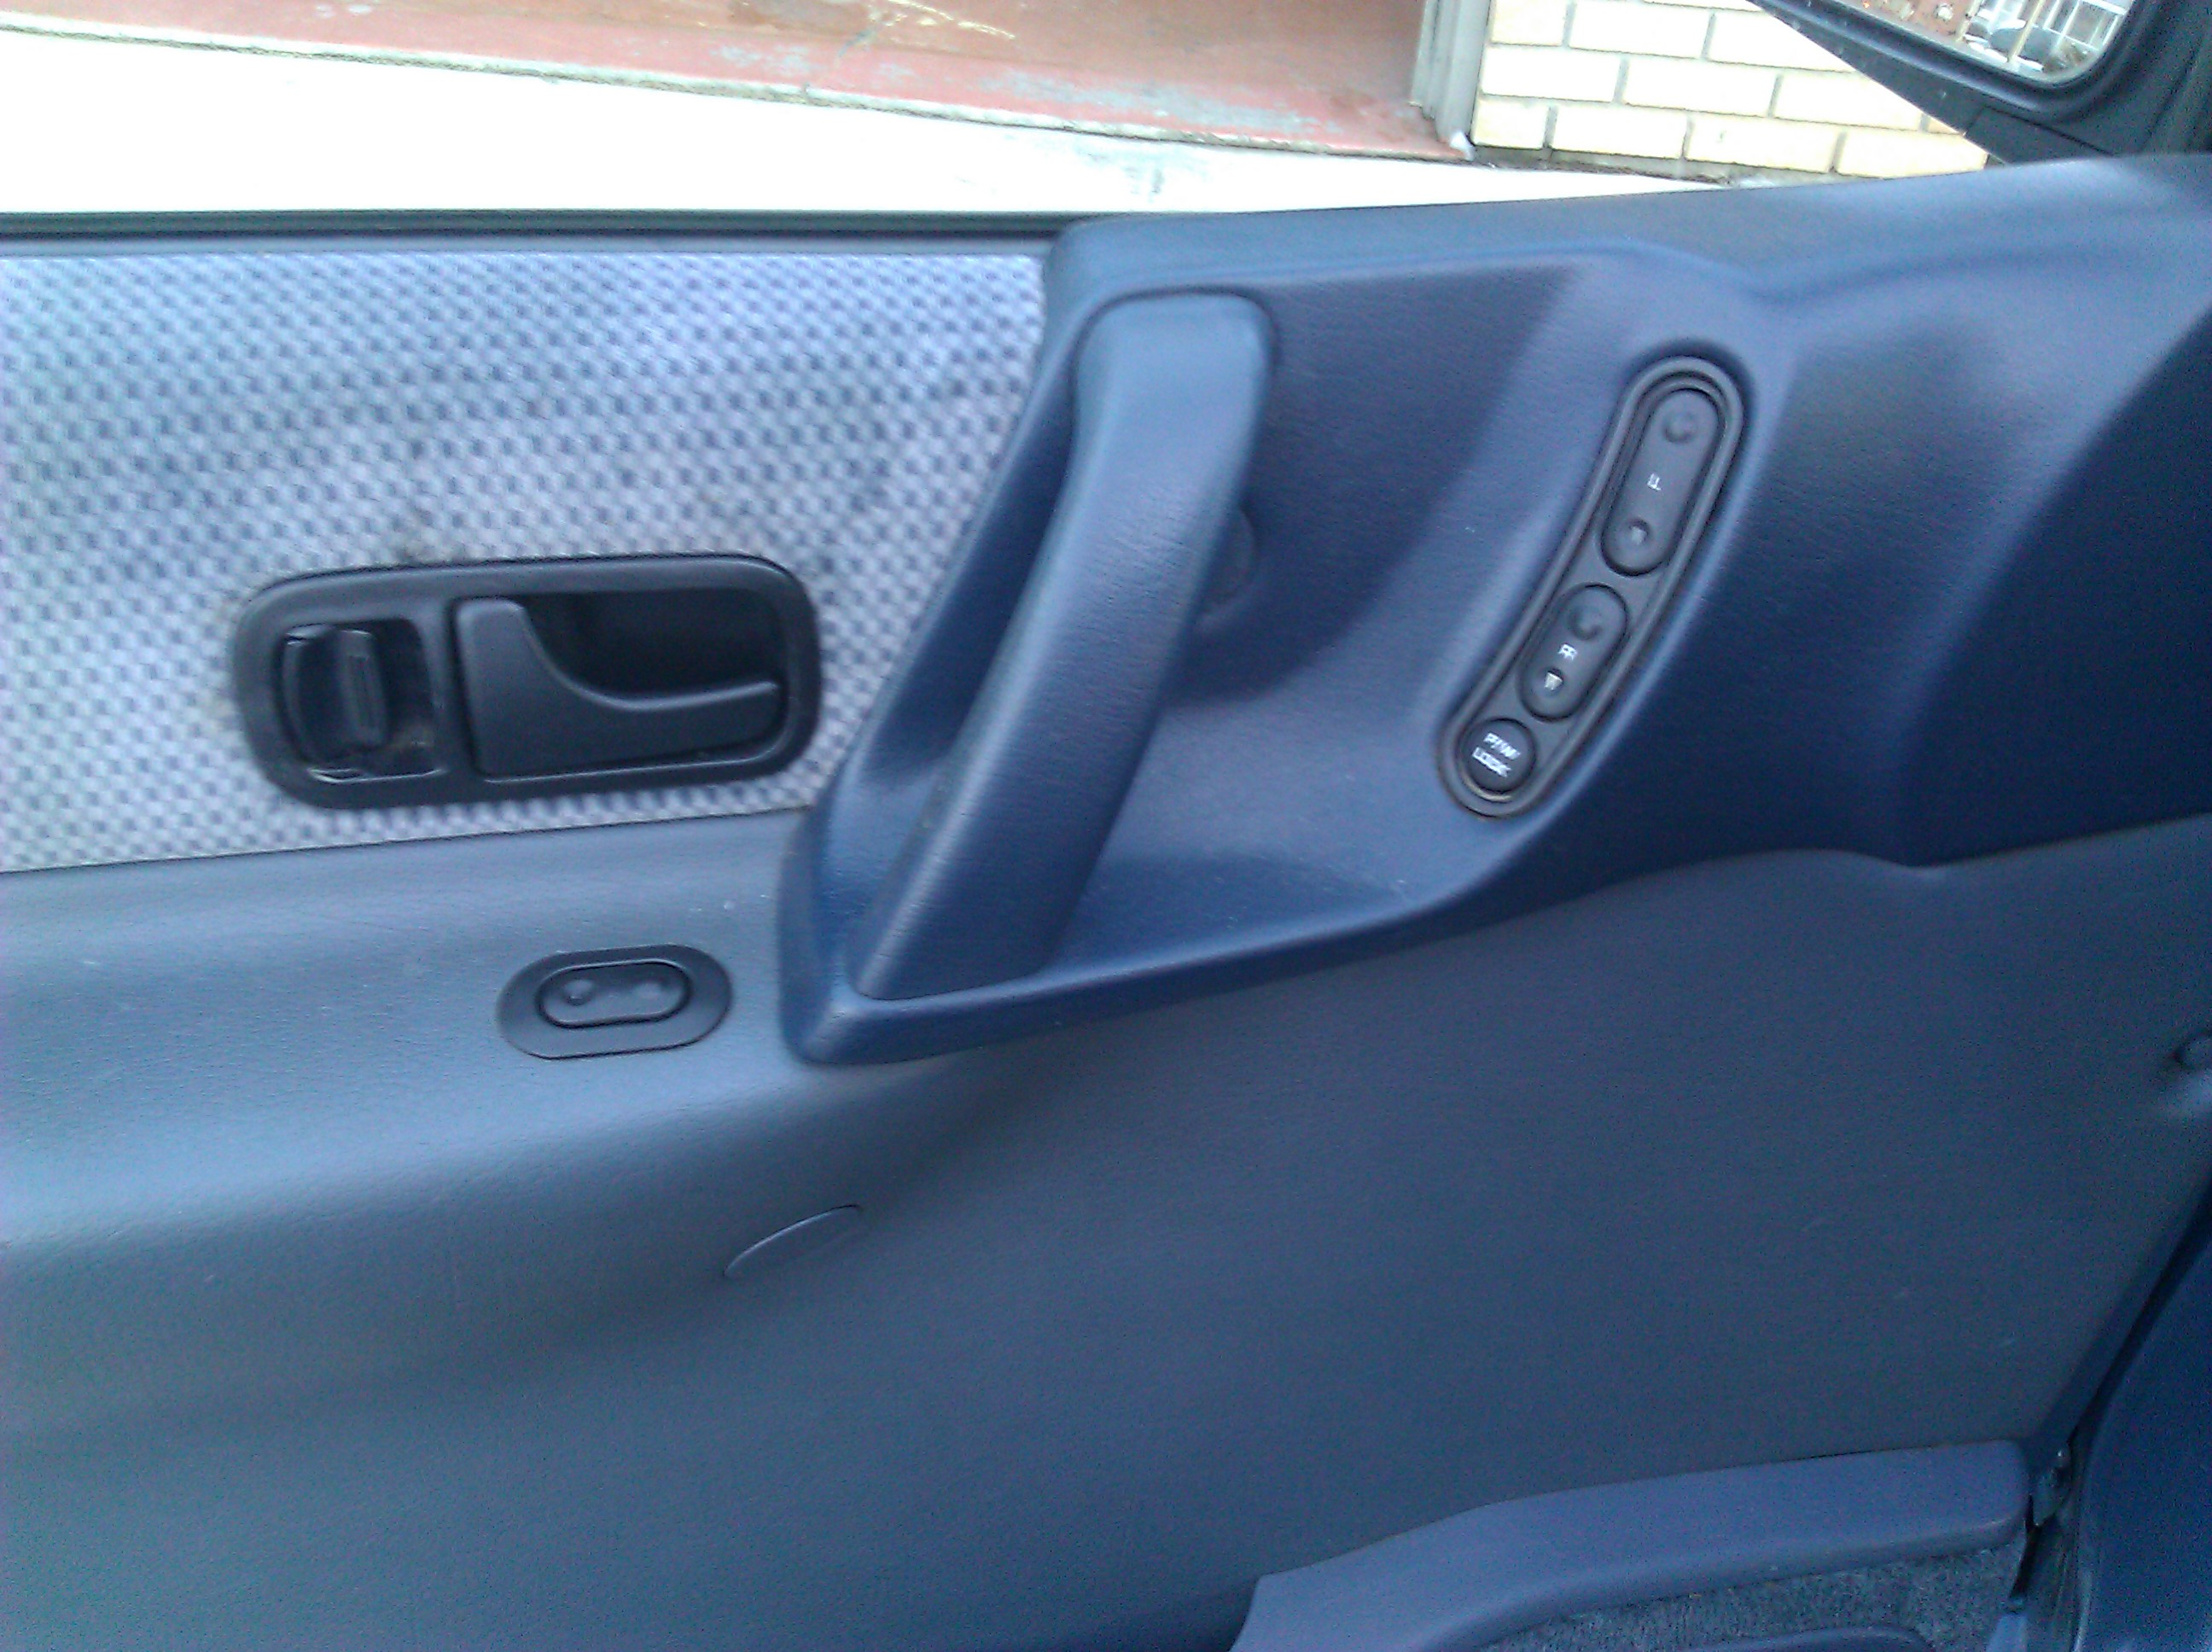 How do i remove the door panel from my 94 nissan quest, it seems ...